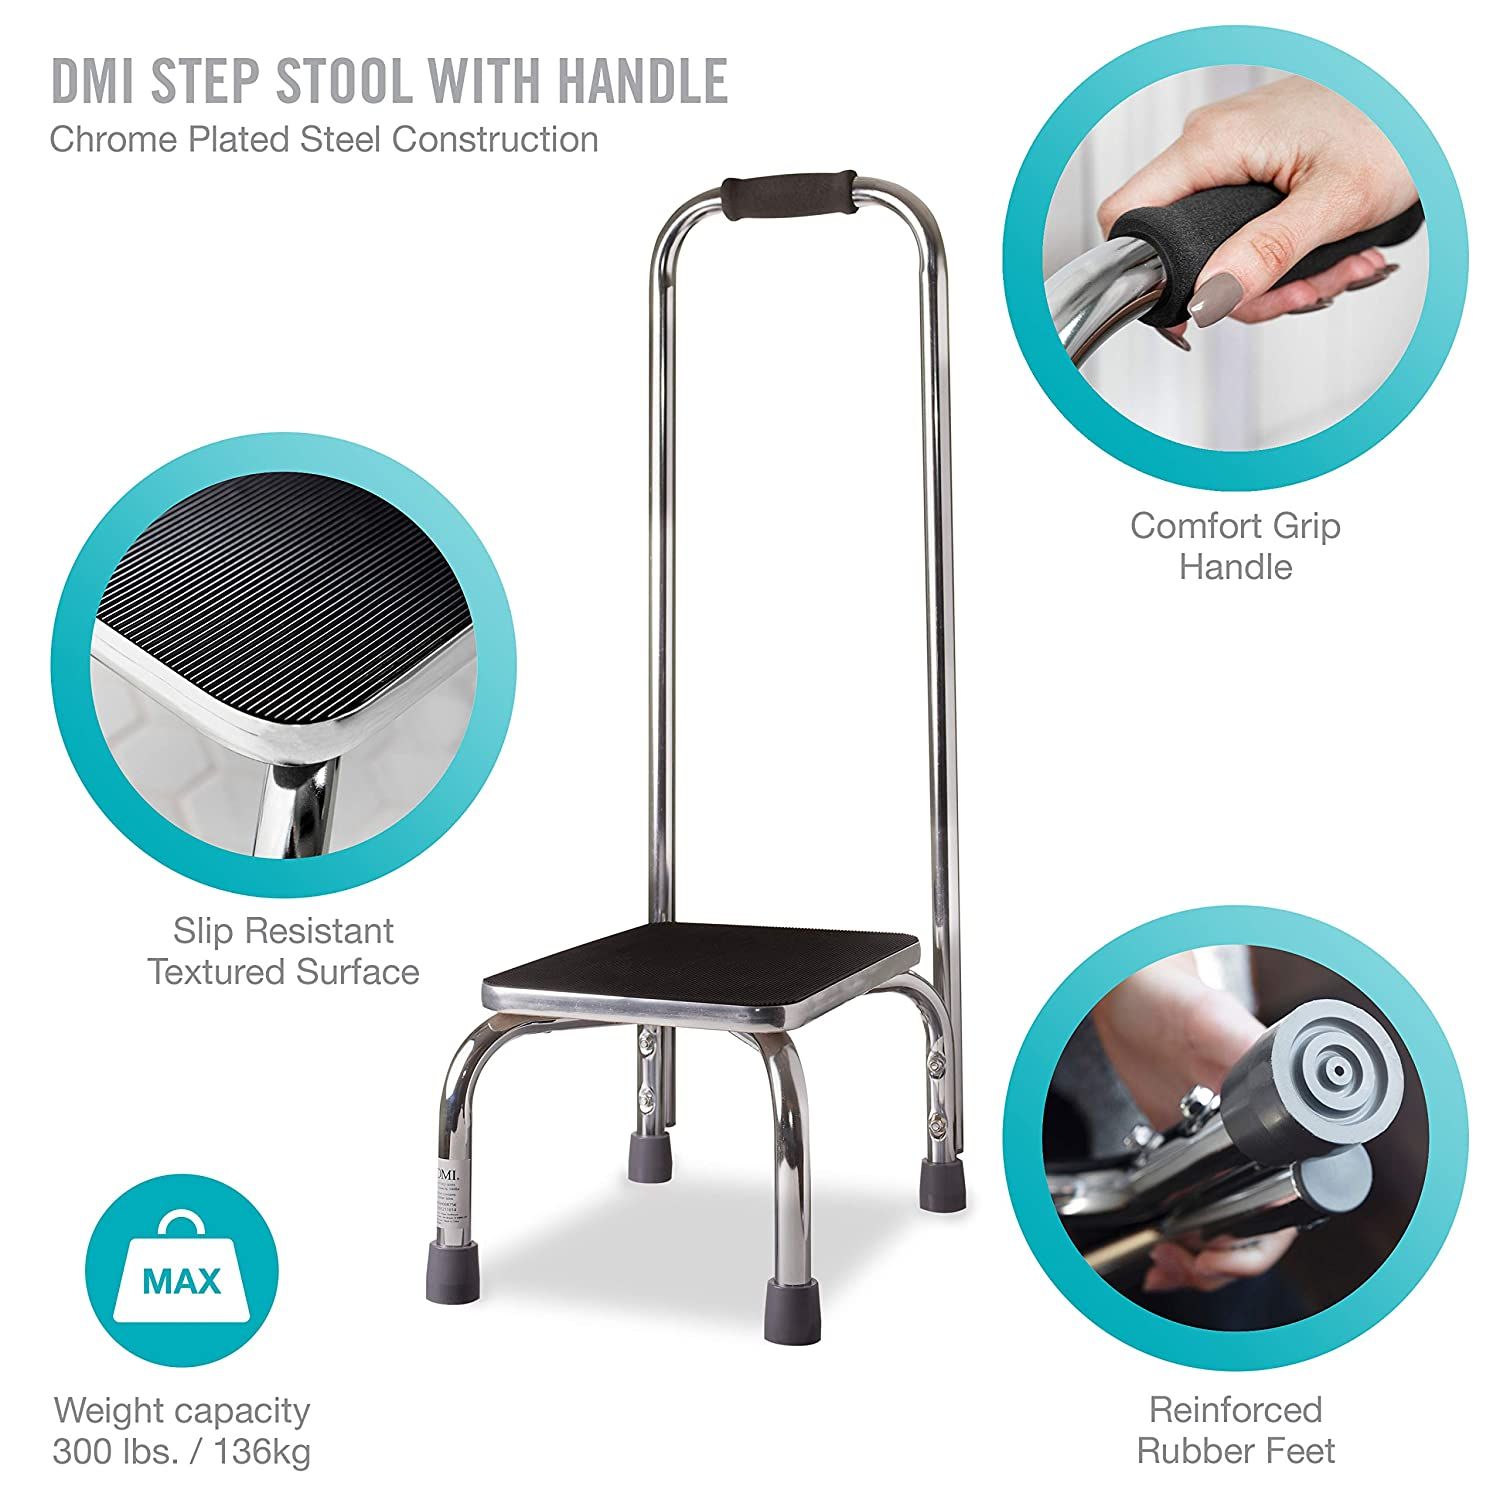 Super Dmi Step Stool With Handle For Adults And Seniors Heavy Duty Metal Stepping Stool For High Beds Portable Foot Step Stool For Elderly 300 Lb Weight Ocoug Best Dining Table And Chair Ideas Images Ocougorg